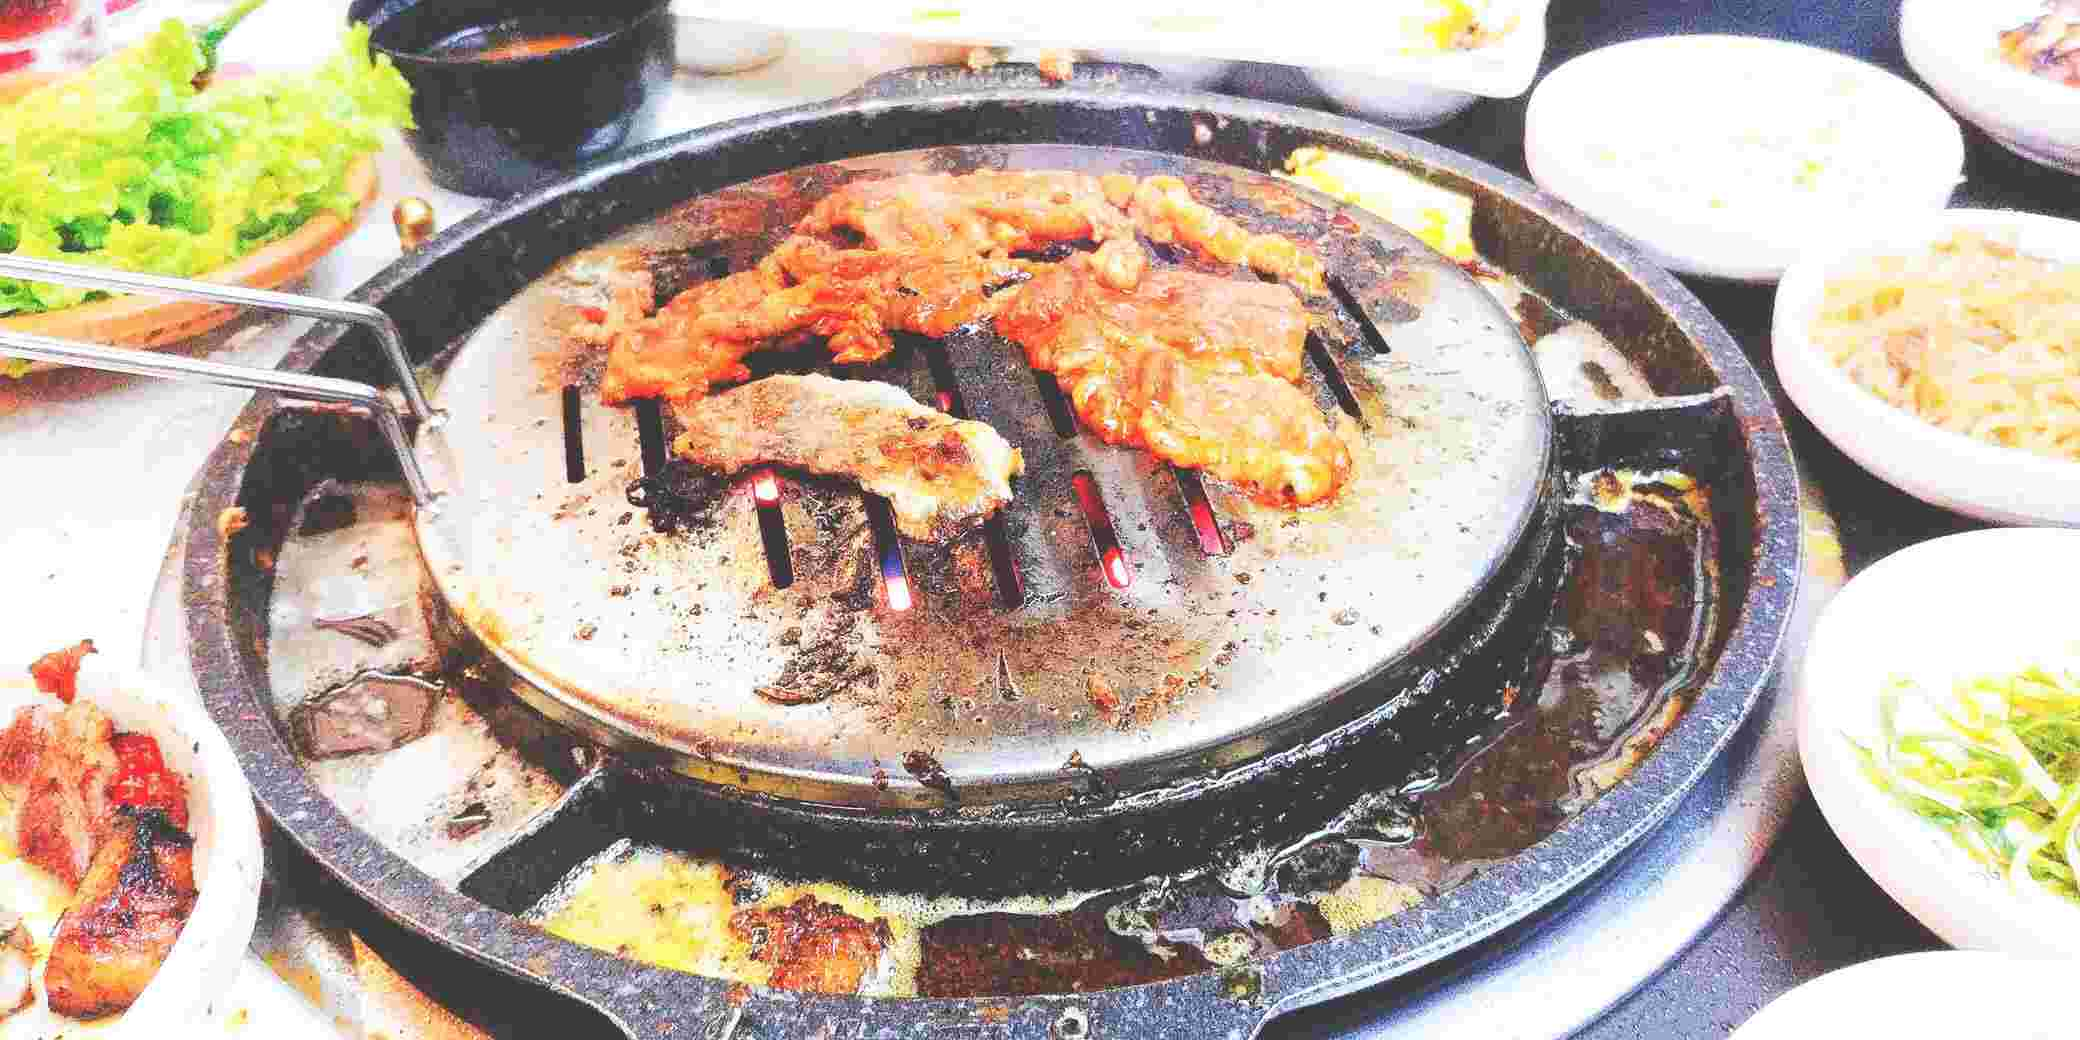 Meats on the grill at Romantic Baboy